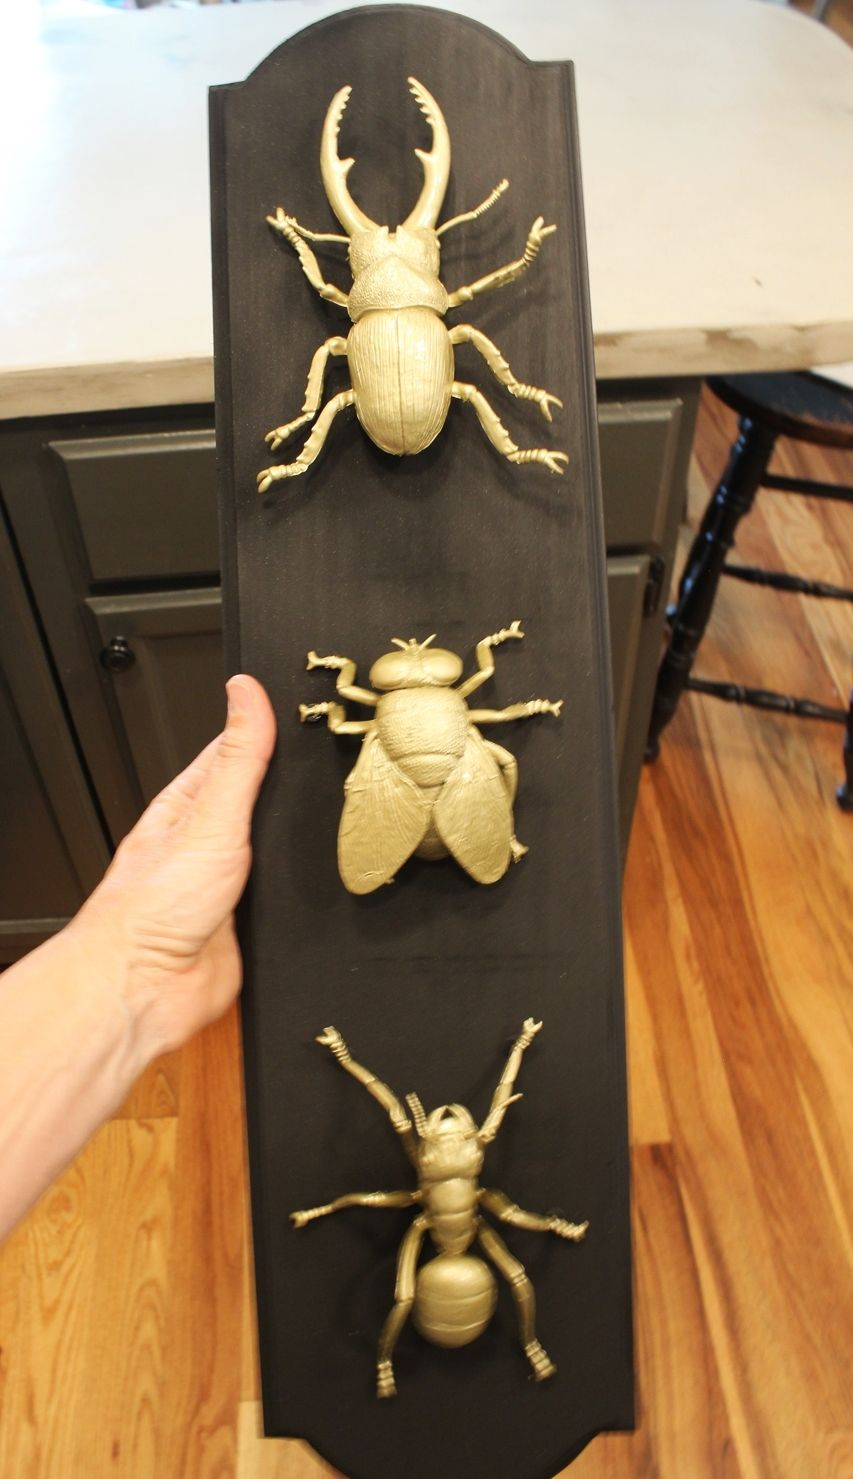 DIY Insect Taxidermy- prepare to display